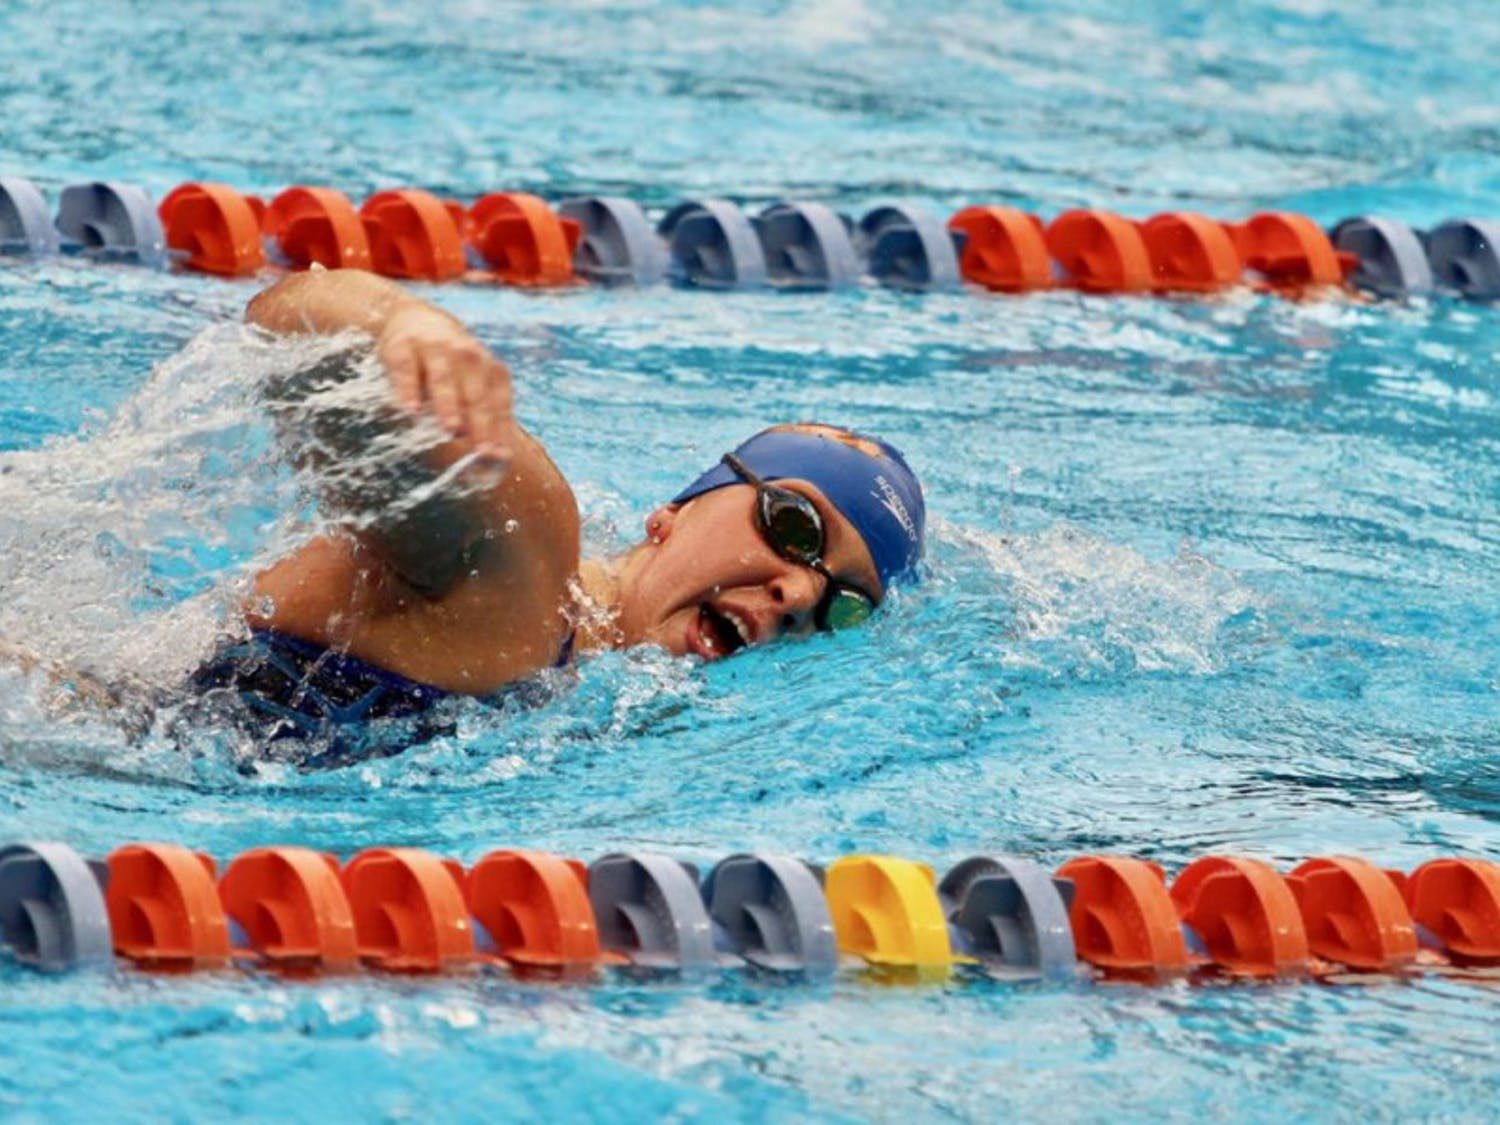 Sophomore Taylor Ault finished third in the 500-yard freestyle during Day 1 of the Georgia Tech Invitational. She posted a time of 4:42.08.